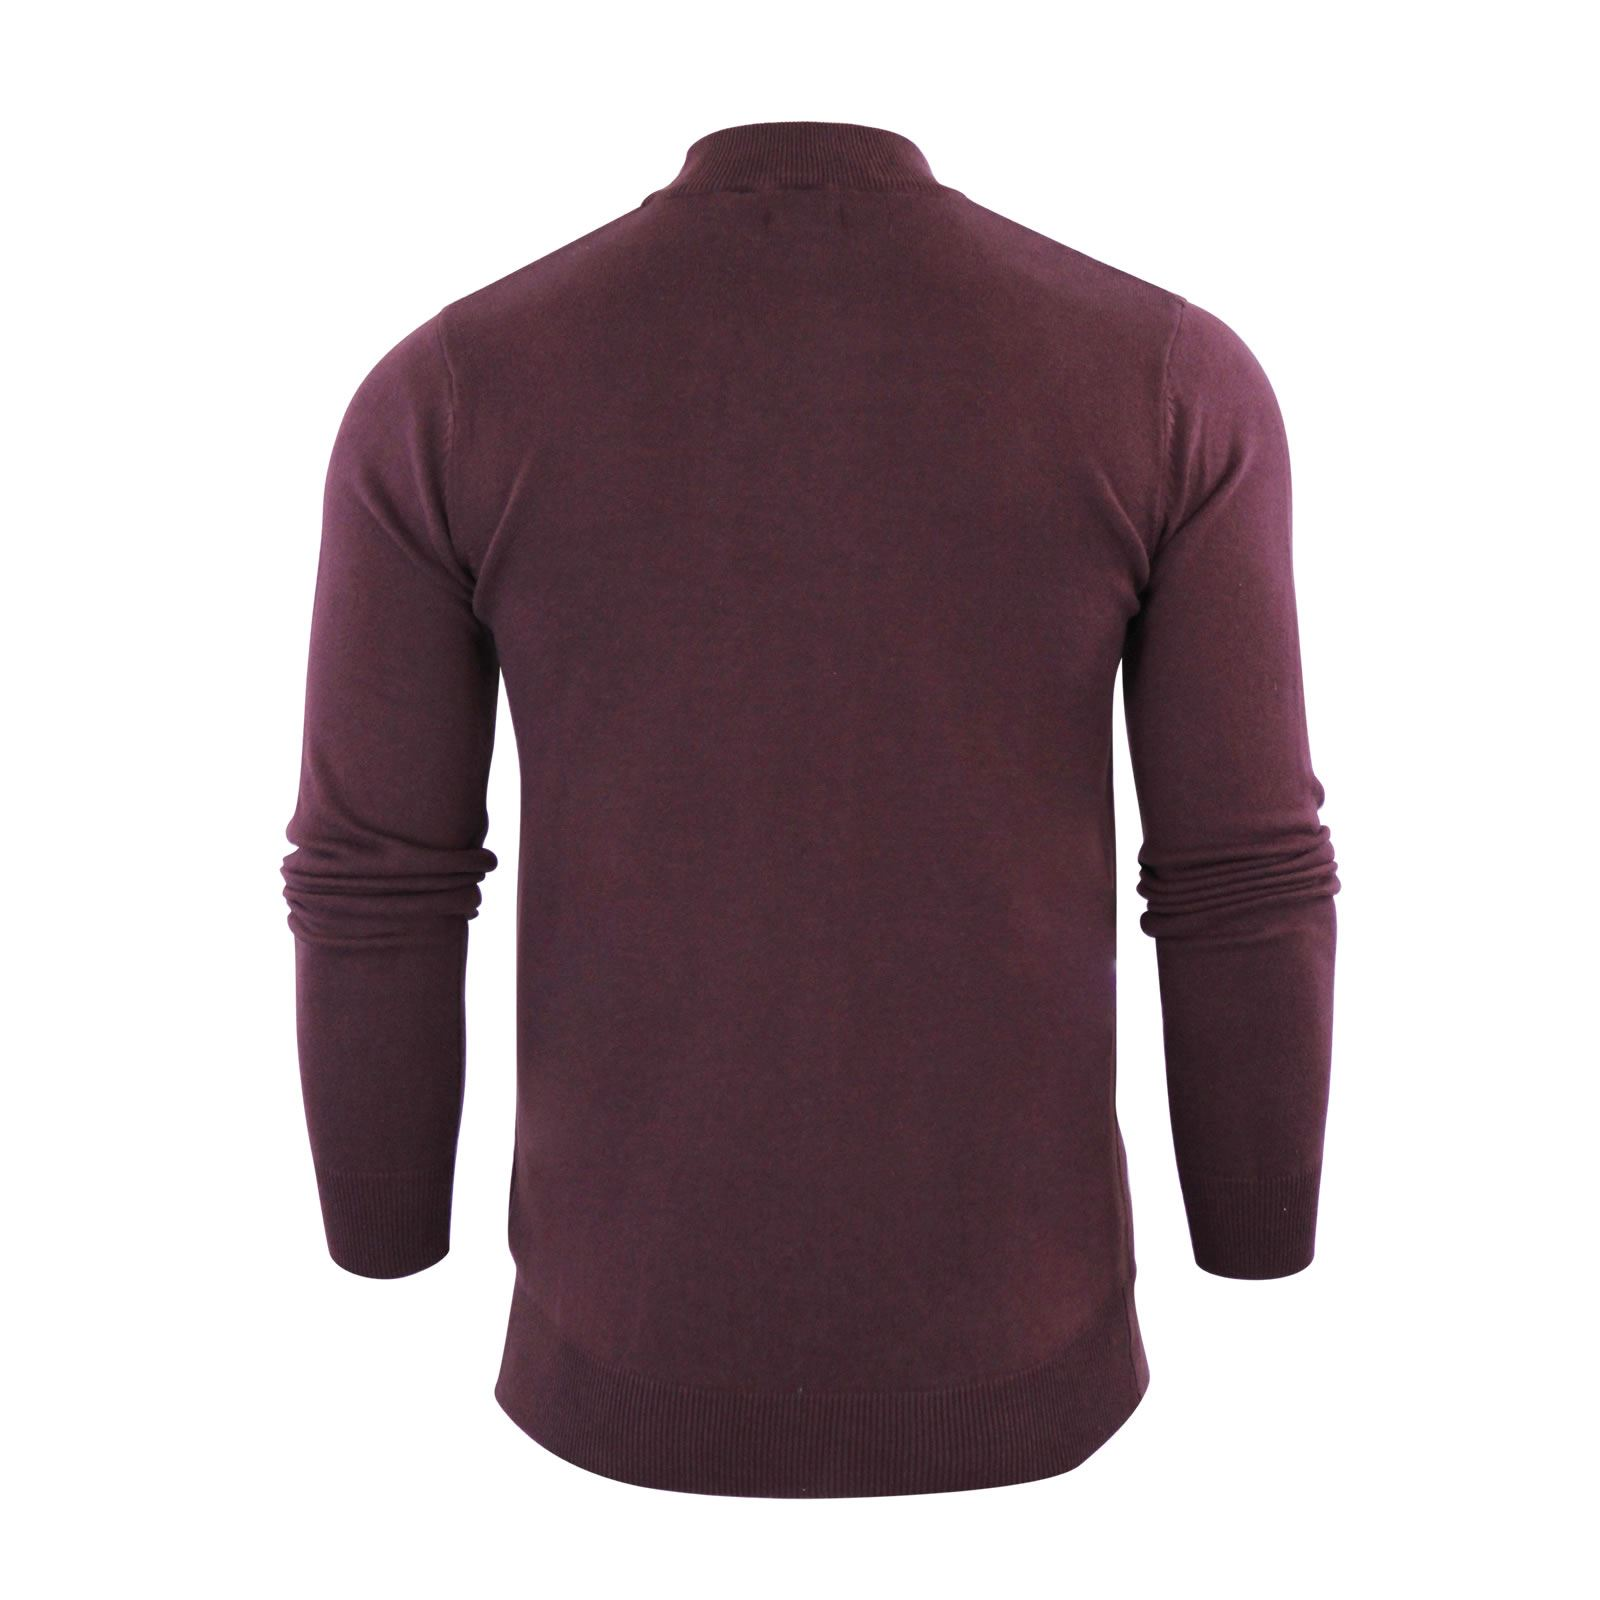 Mens-Jumper-Brave-Soul-Turtle-Neck-Cotton-Pull-Over-Sweater thumbnail 15